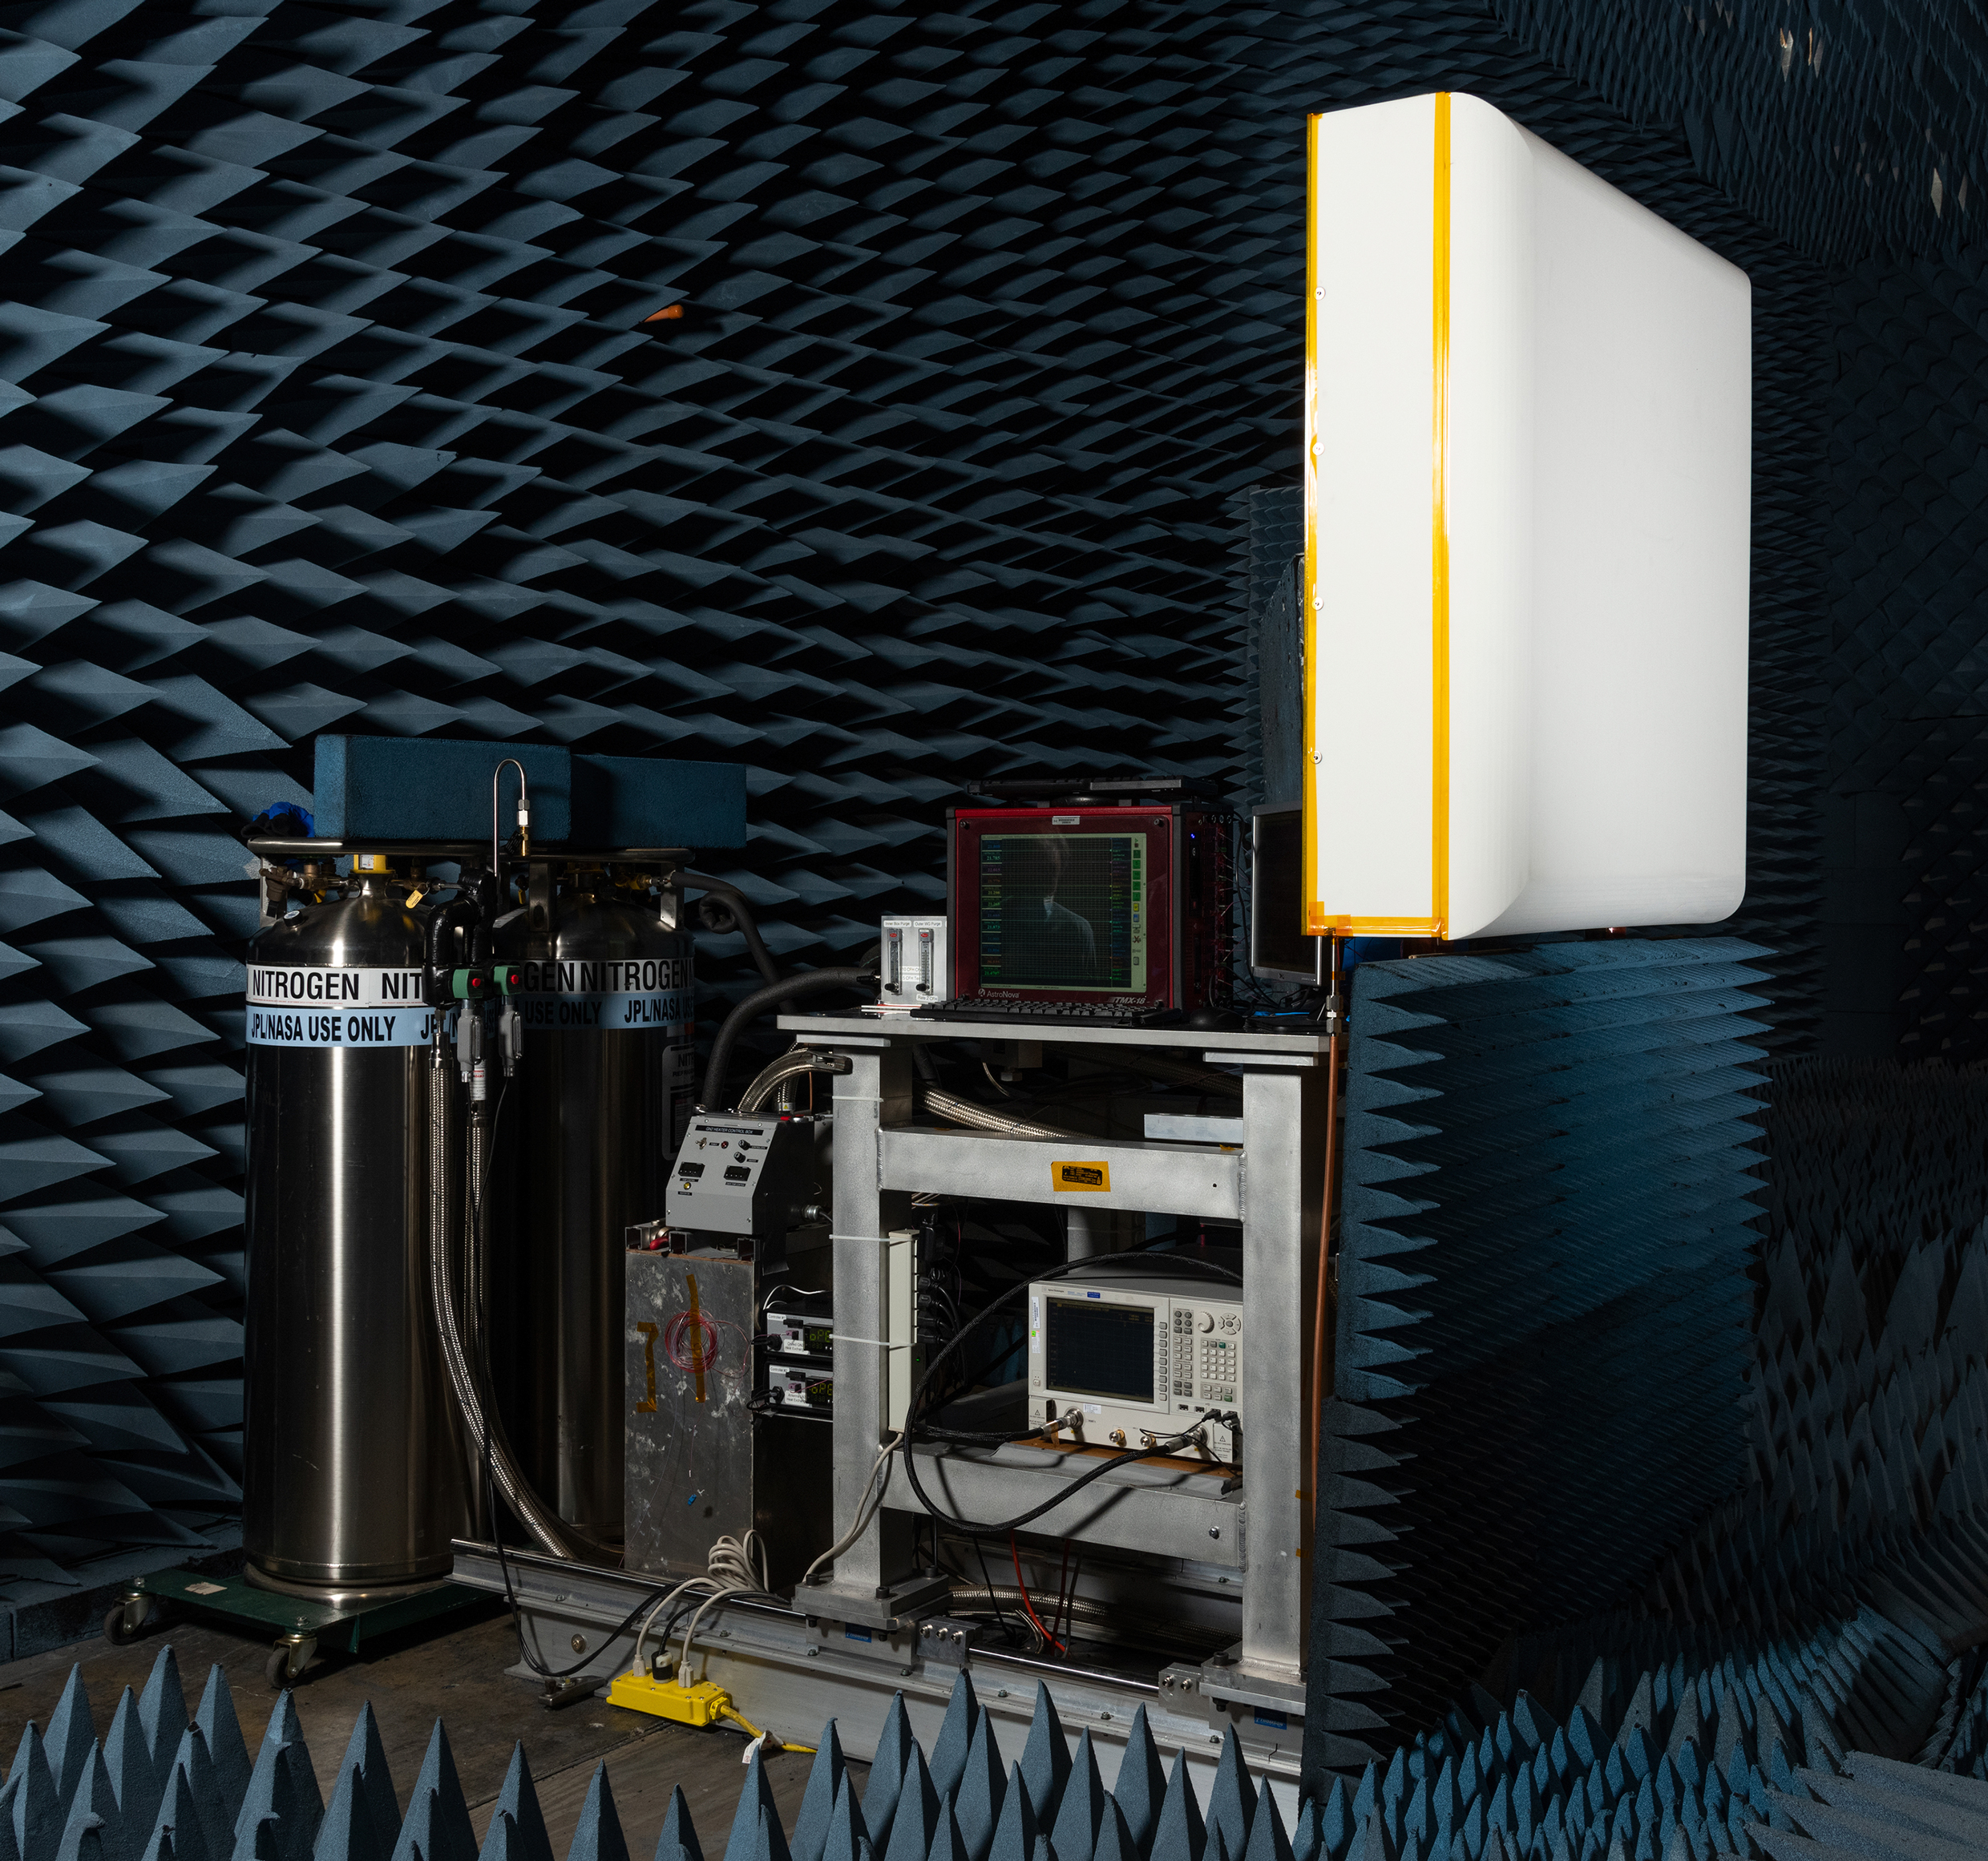 Photo of antenna in an anechoic chamber with the antenna in a white foam box.